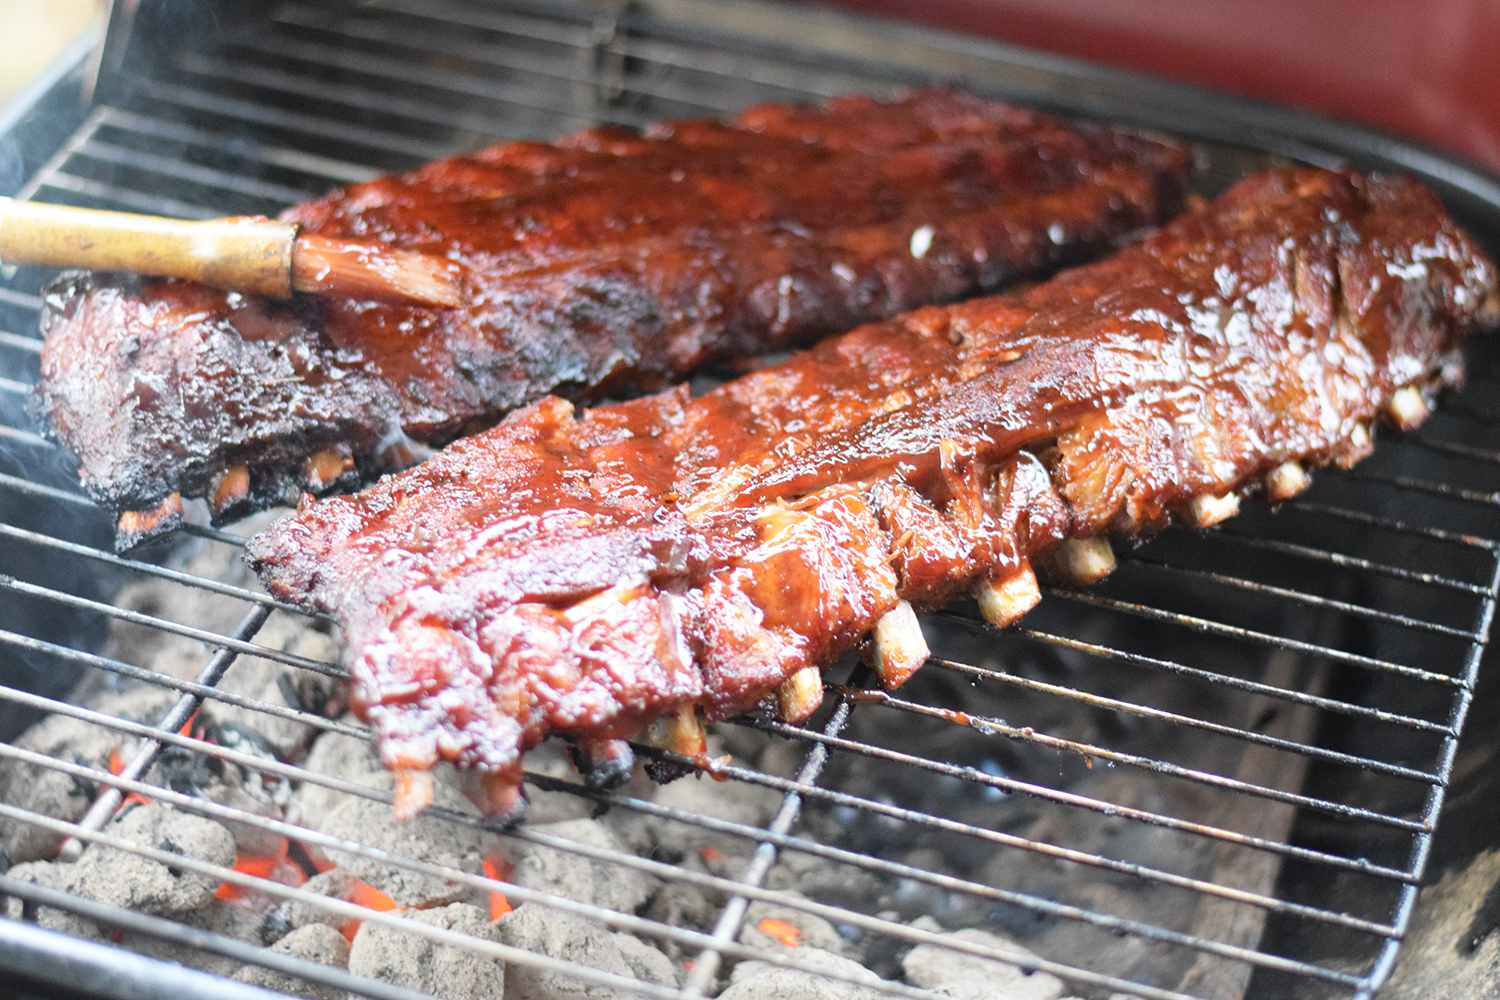 How To Make Barbecue Ribs On A Charcoal Grill